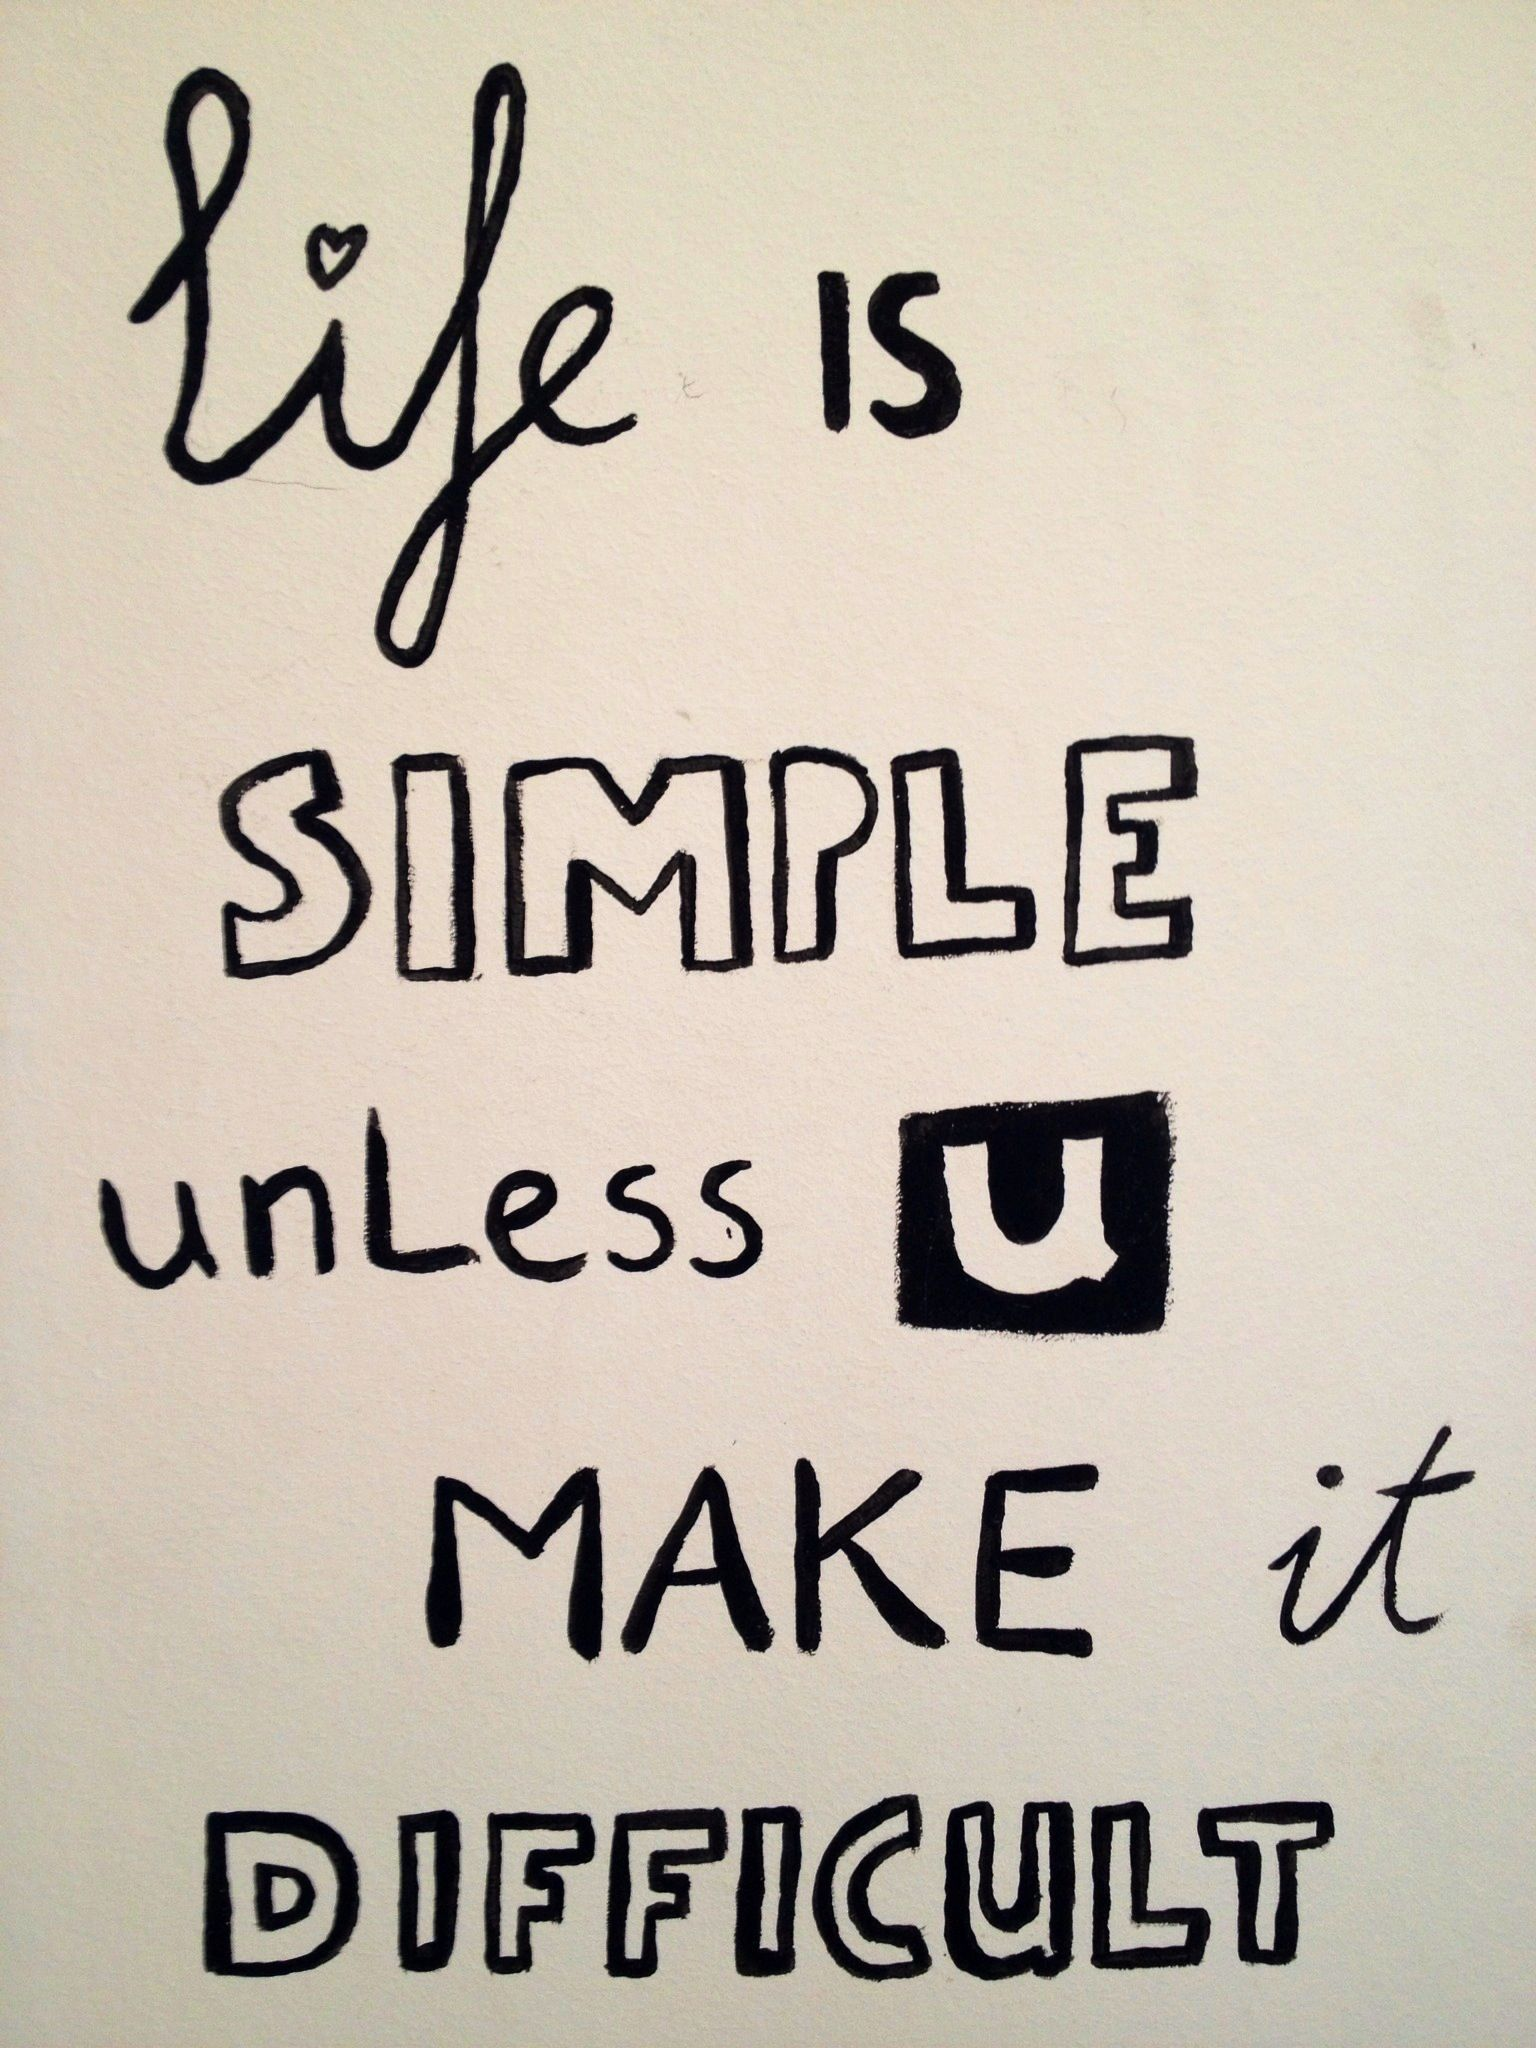 Life is simple unless you make it difficult.... Written on my wall as a reminder! http://pipenik.wordpress.com/2013/06/30/muurpret/